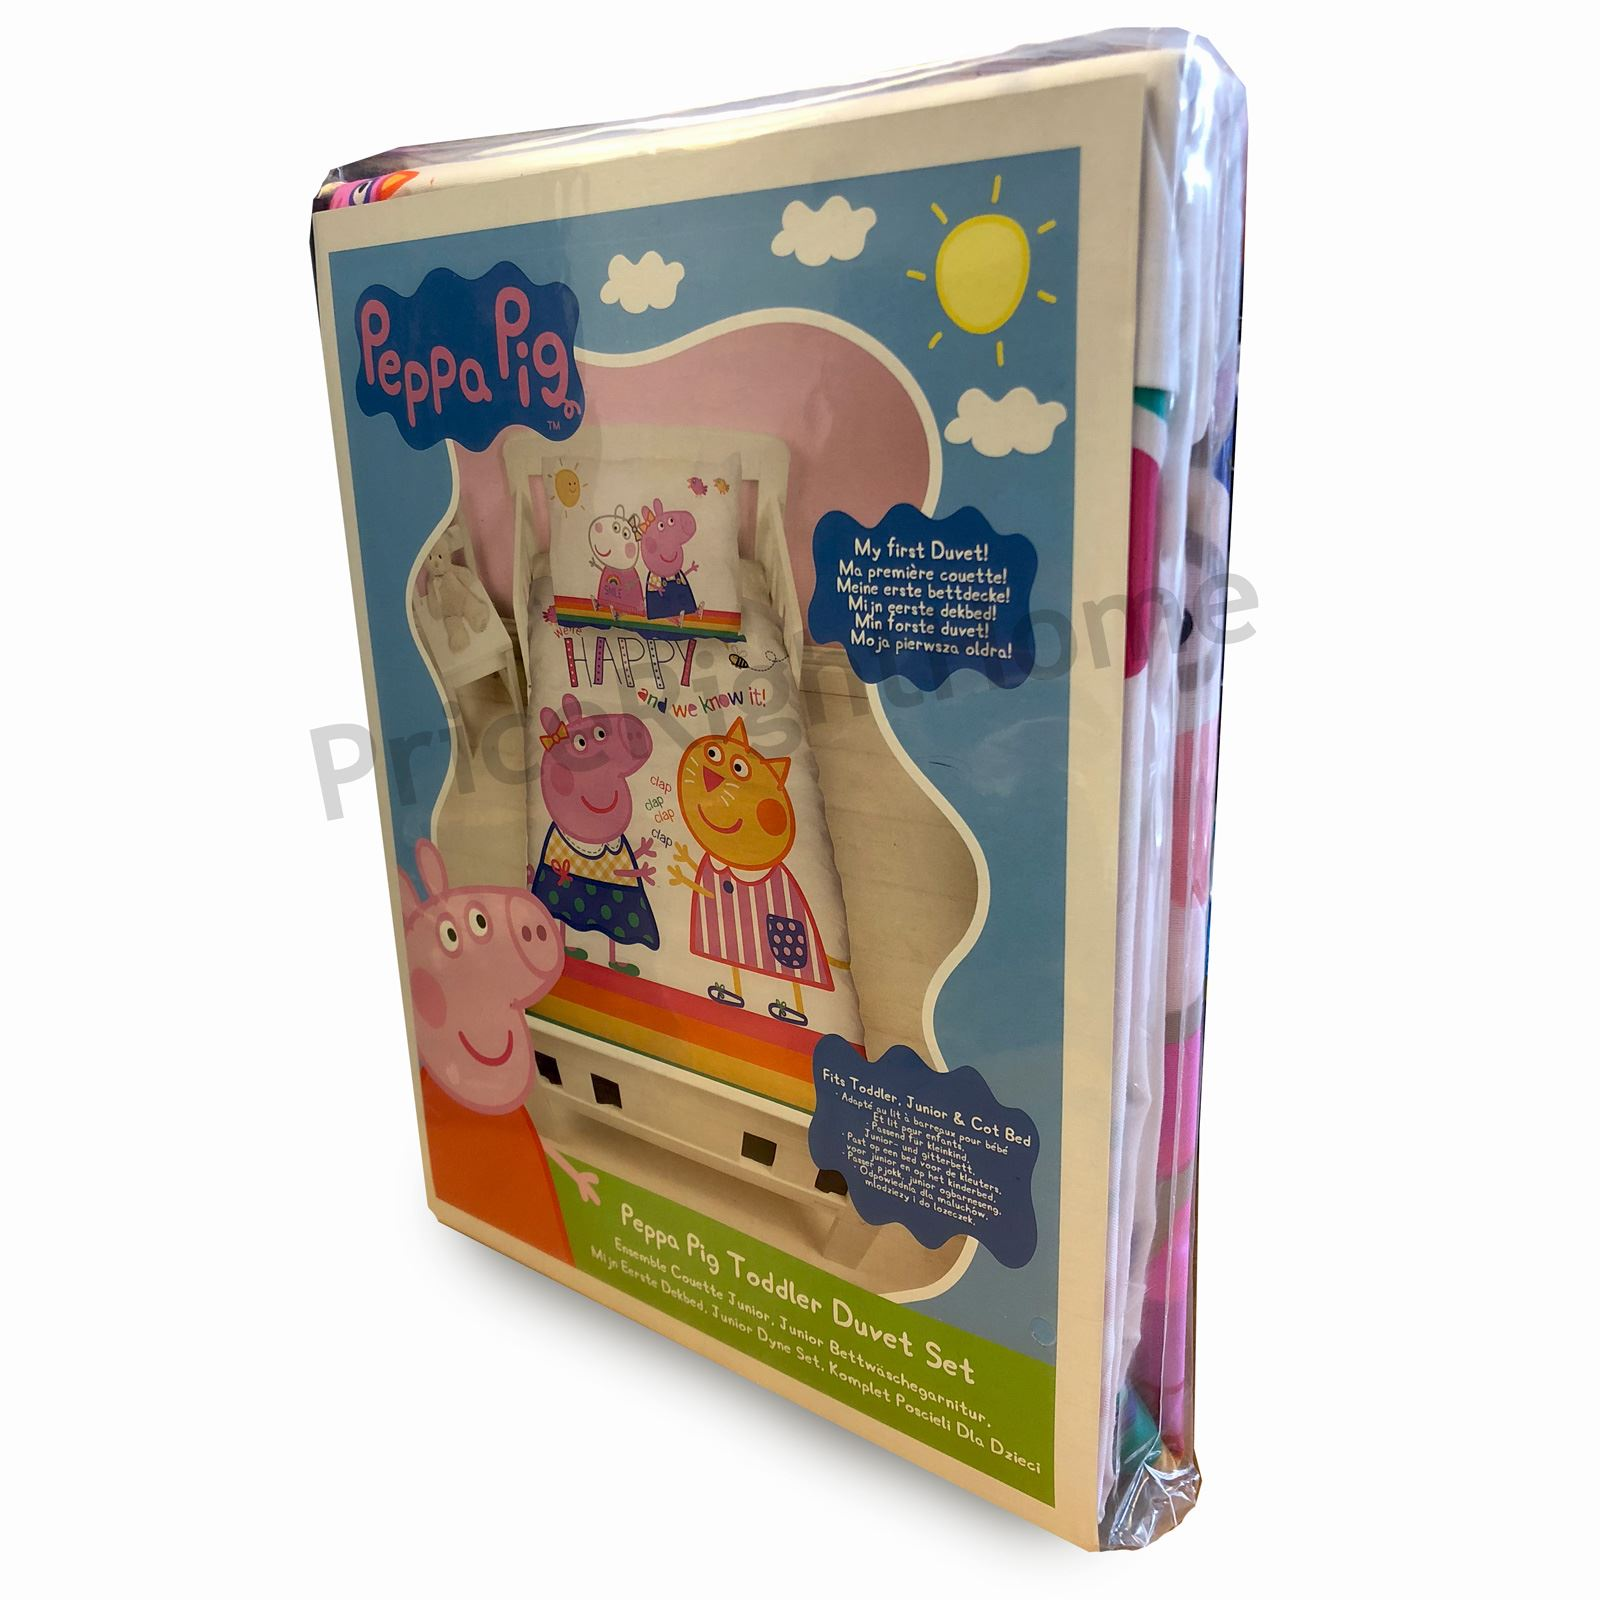 Peppa Pig Bettwäsche Peppa Pig Hurra Junior Kleinkinder Bettwäsche Set Panel